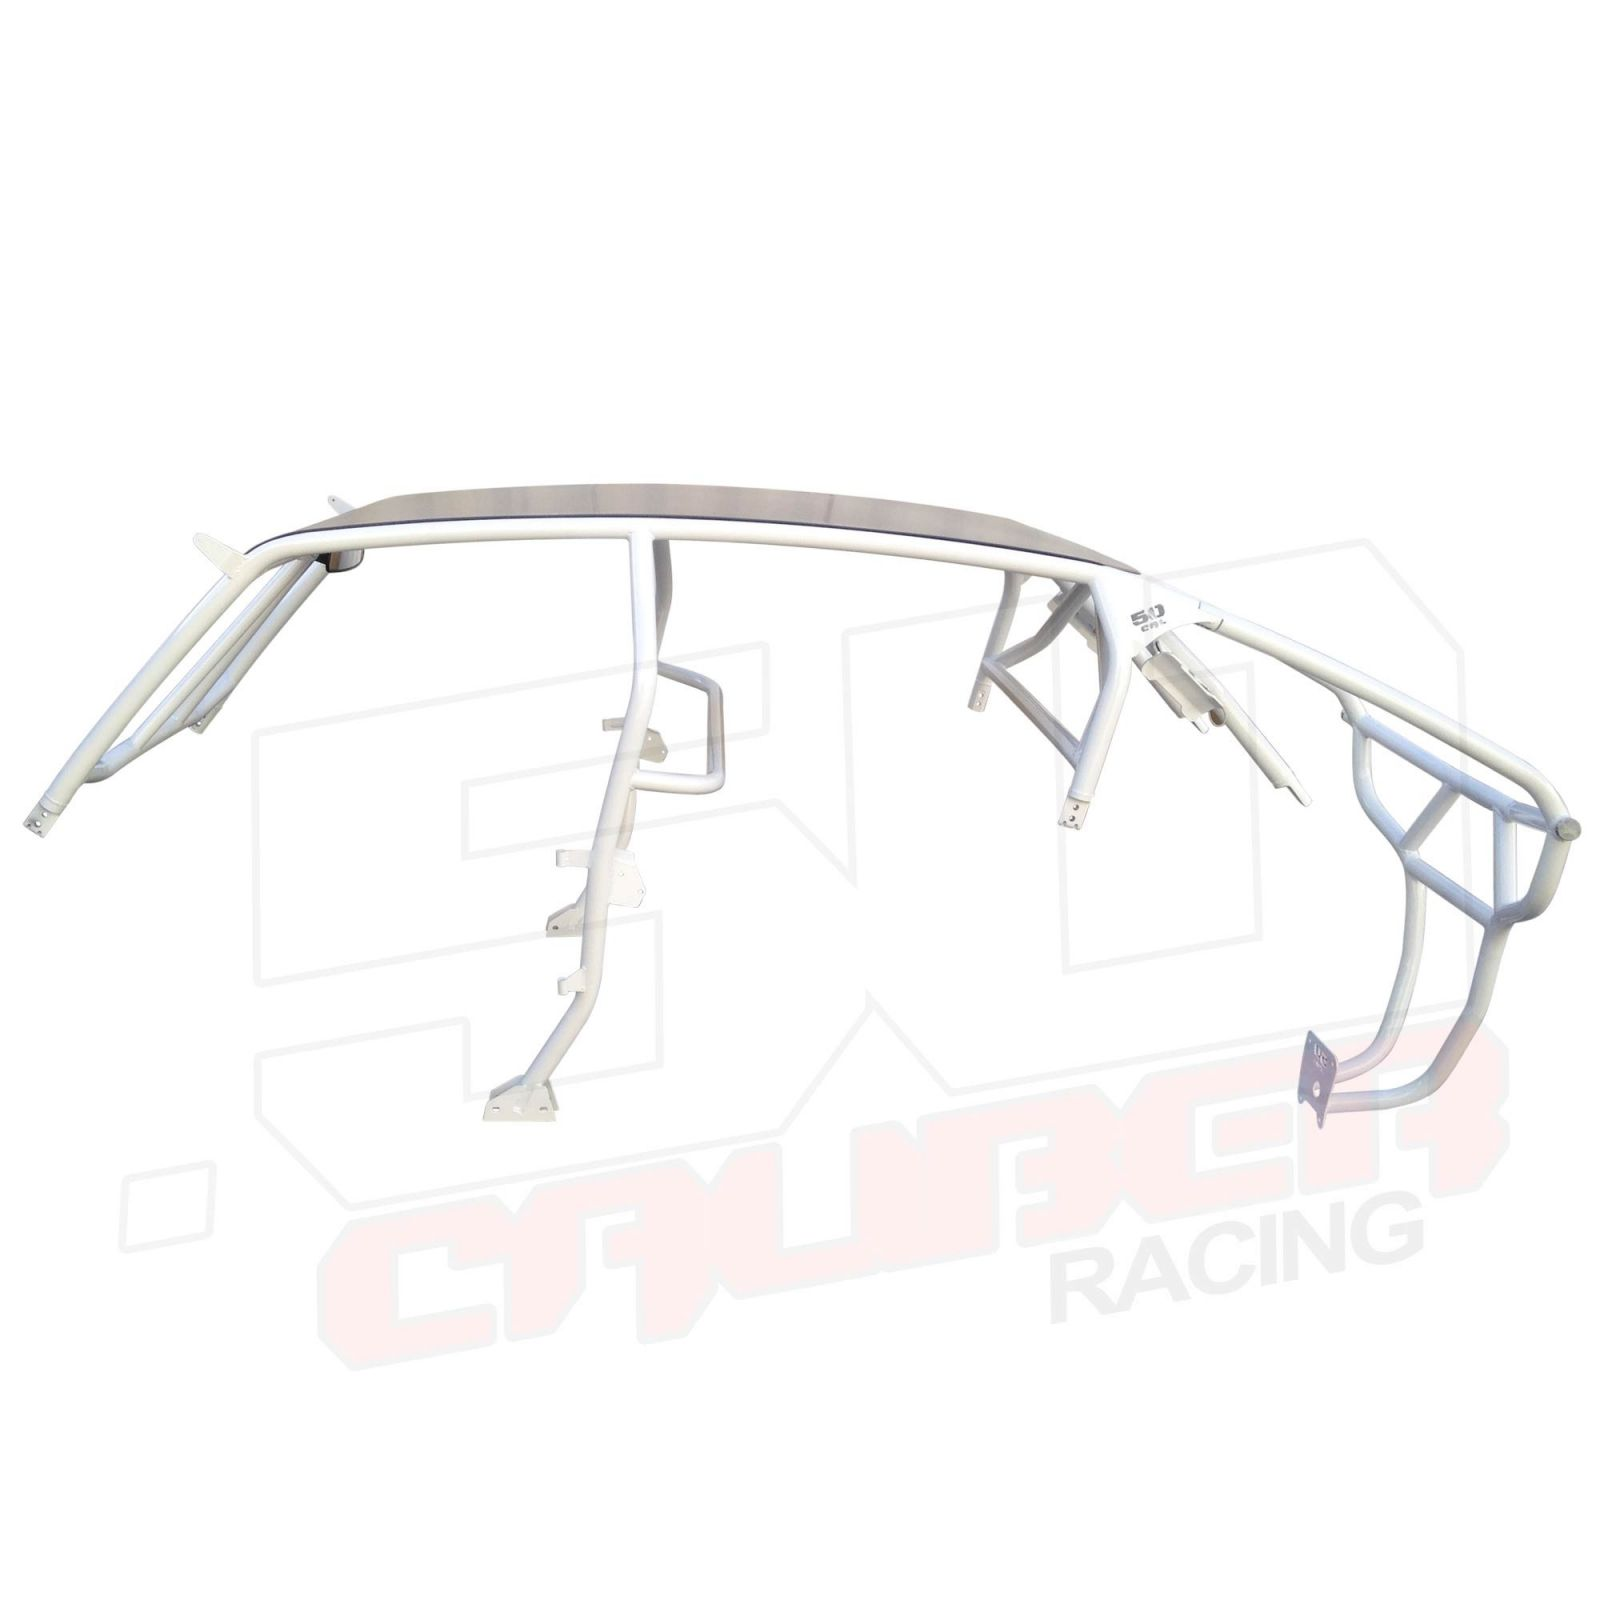 Polaris Rzr Rzr4 Xp Turbo Roll Cage Radius Bends